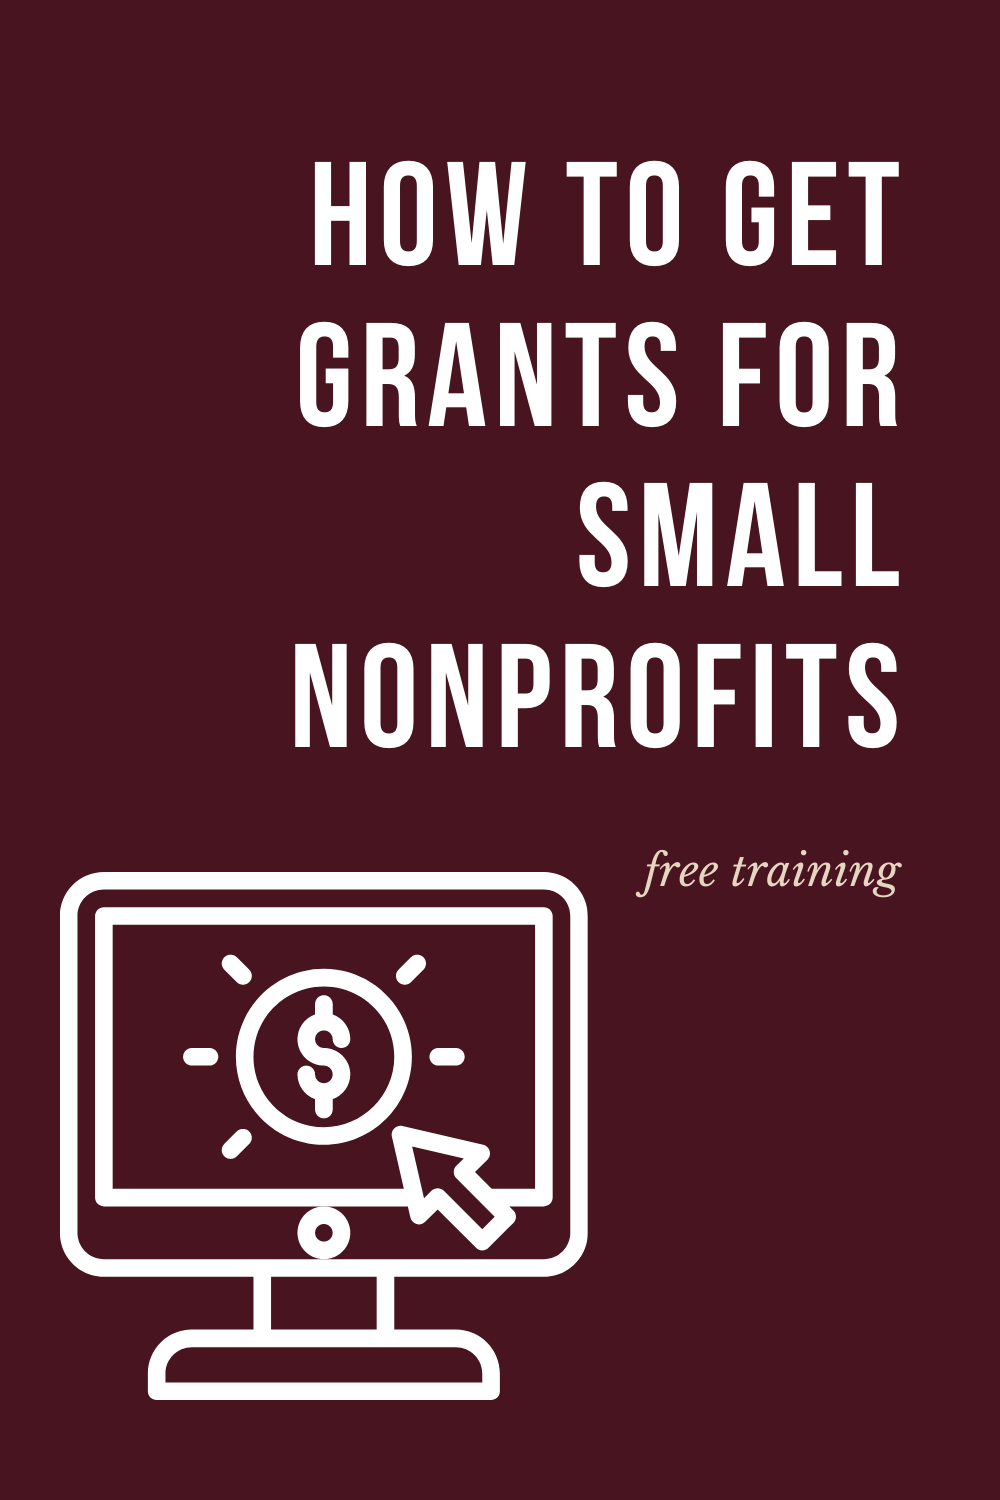 Grant Funding For Small Nonprofits Grants Non Profit Free Training